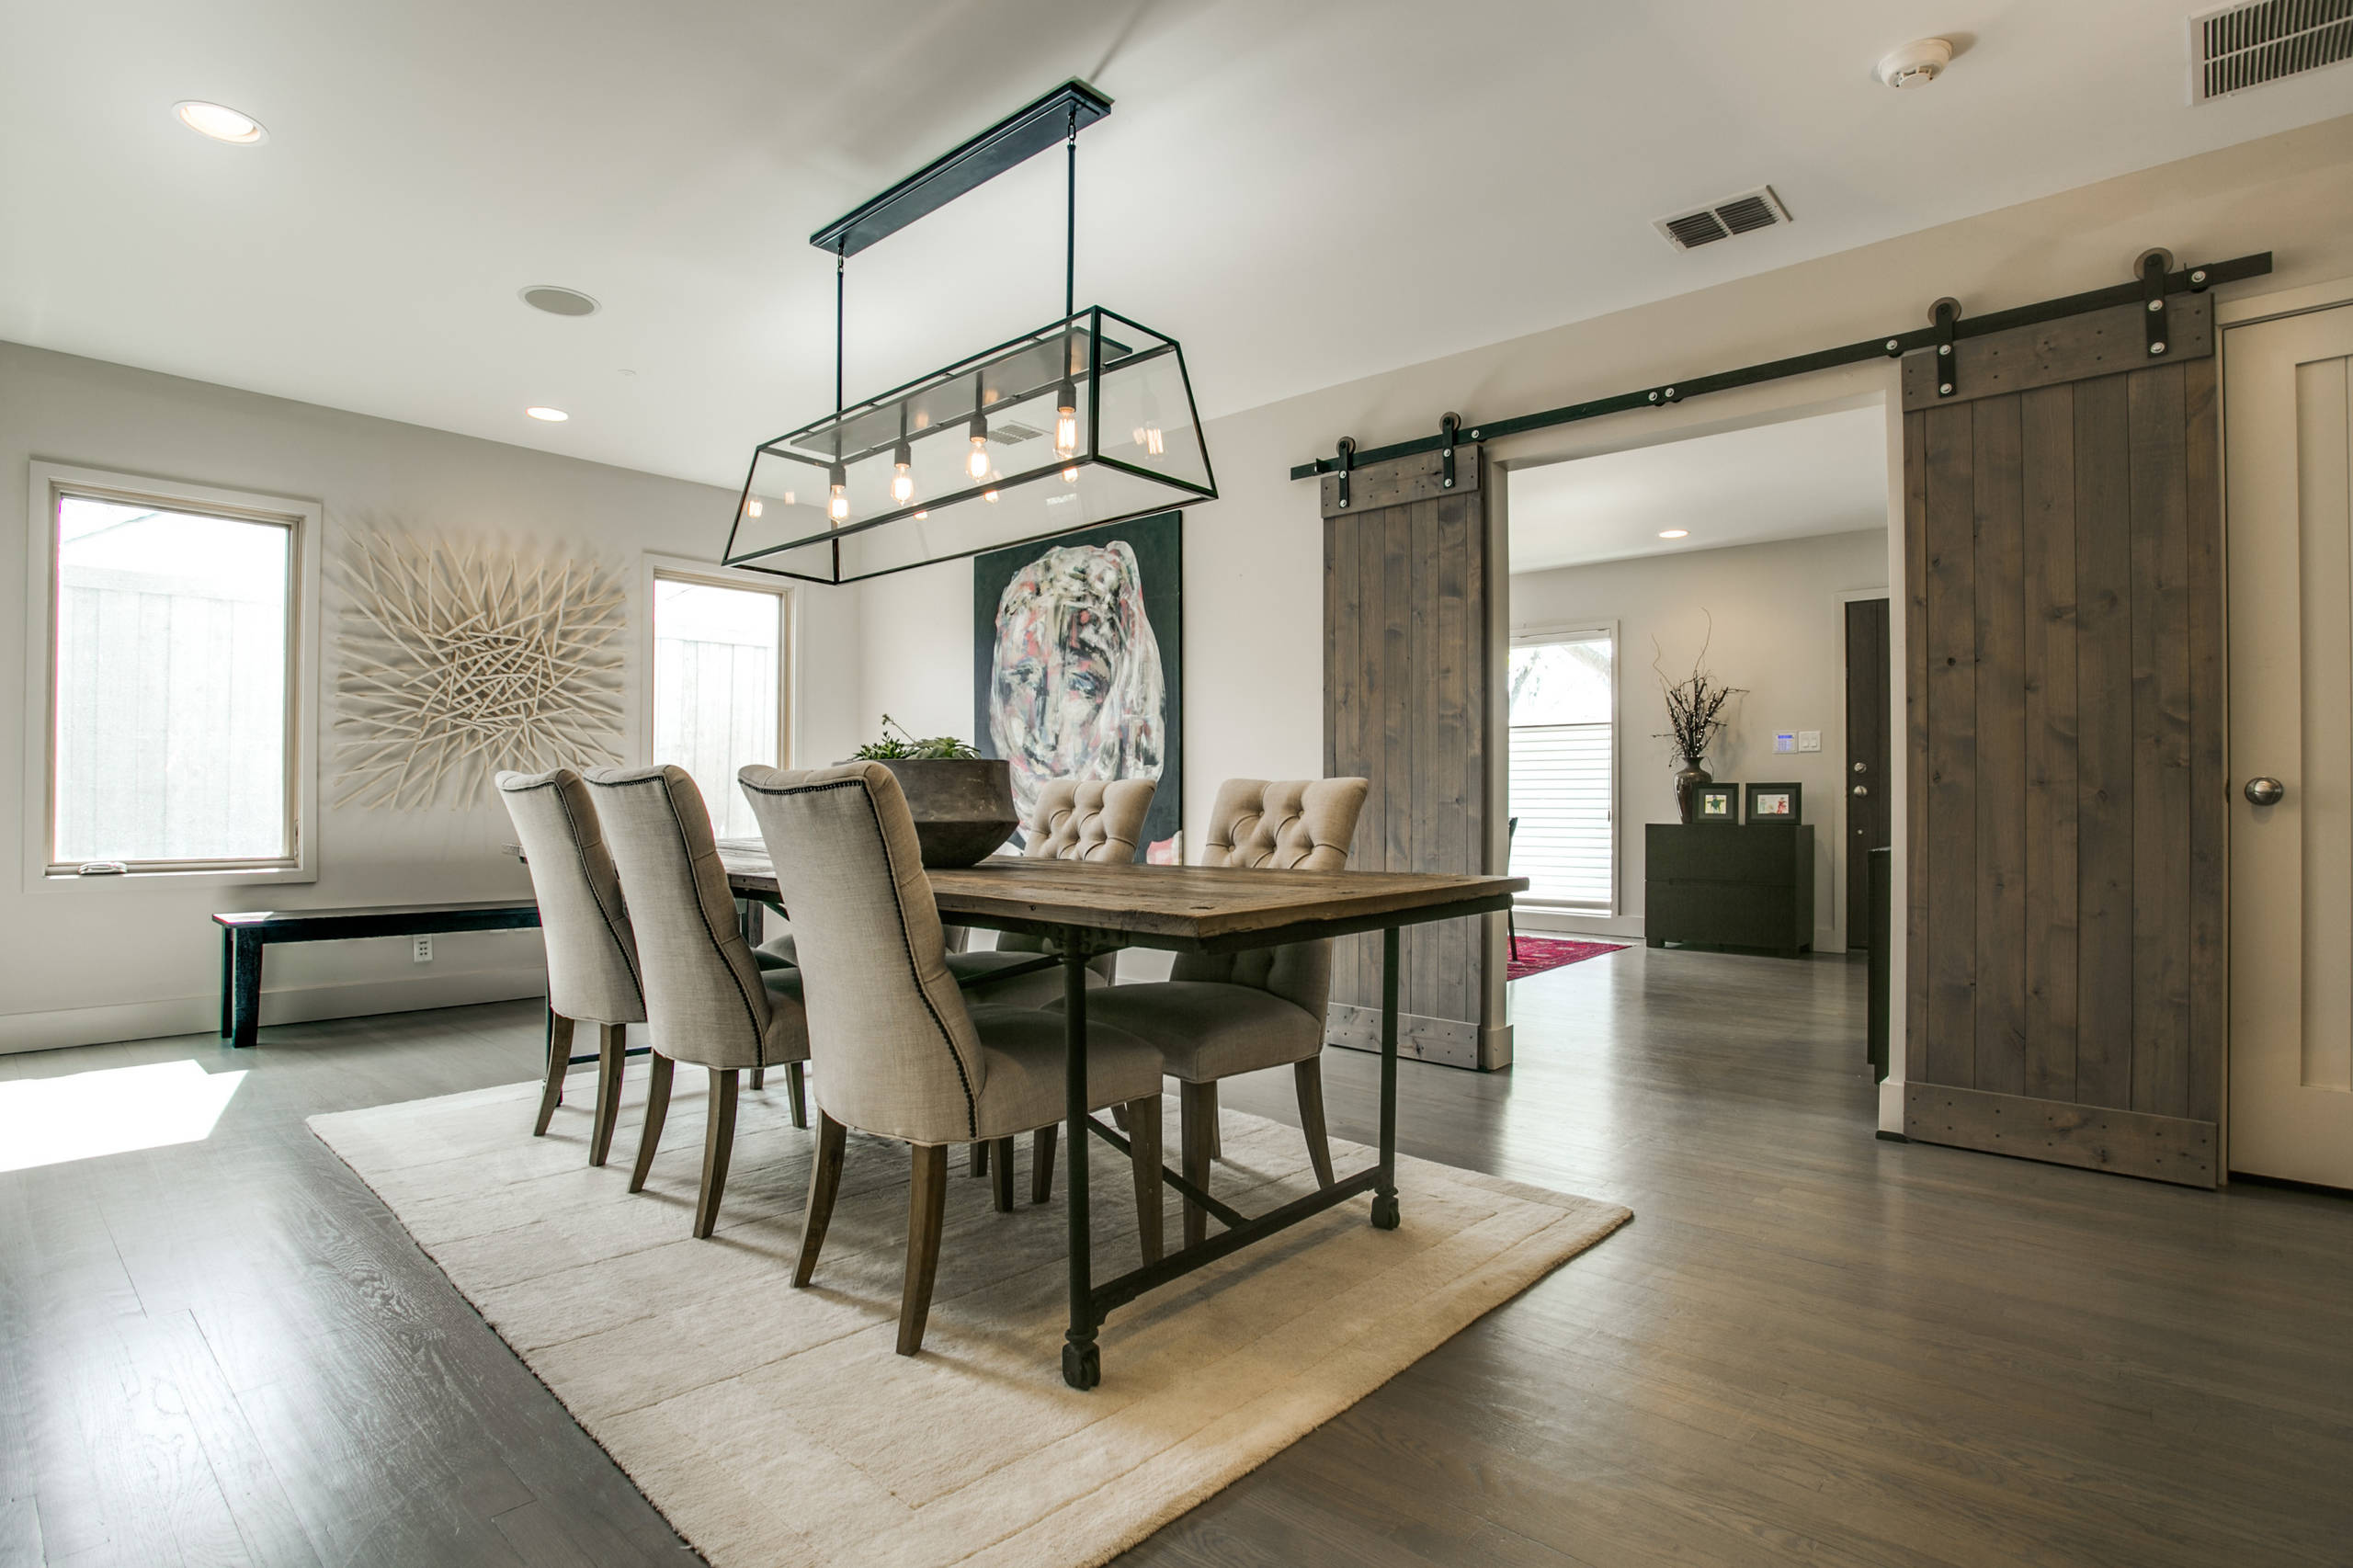 75 Beautiful Farmhouse Dining Room Pictures Ideas February 2021 Houzz